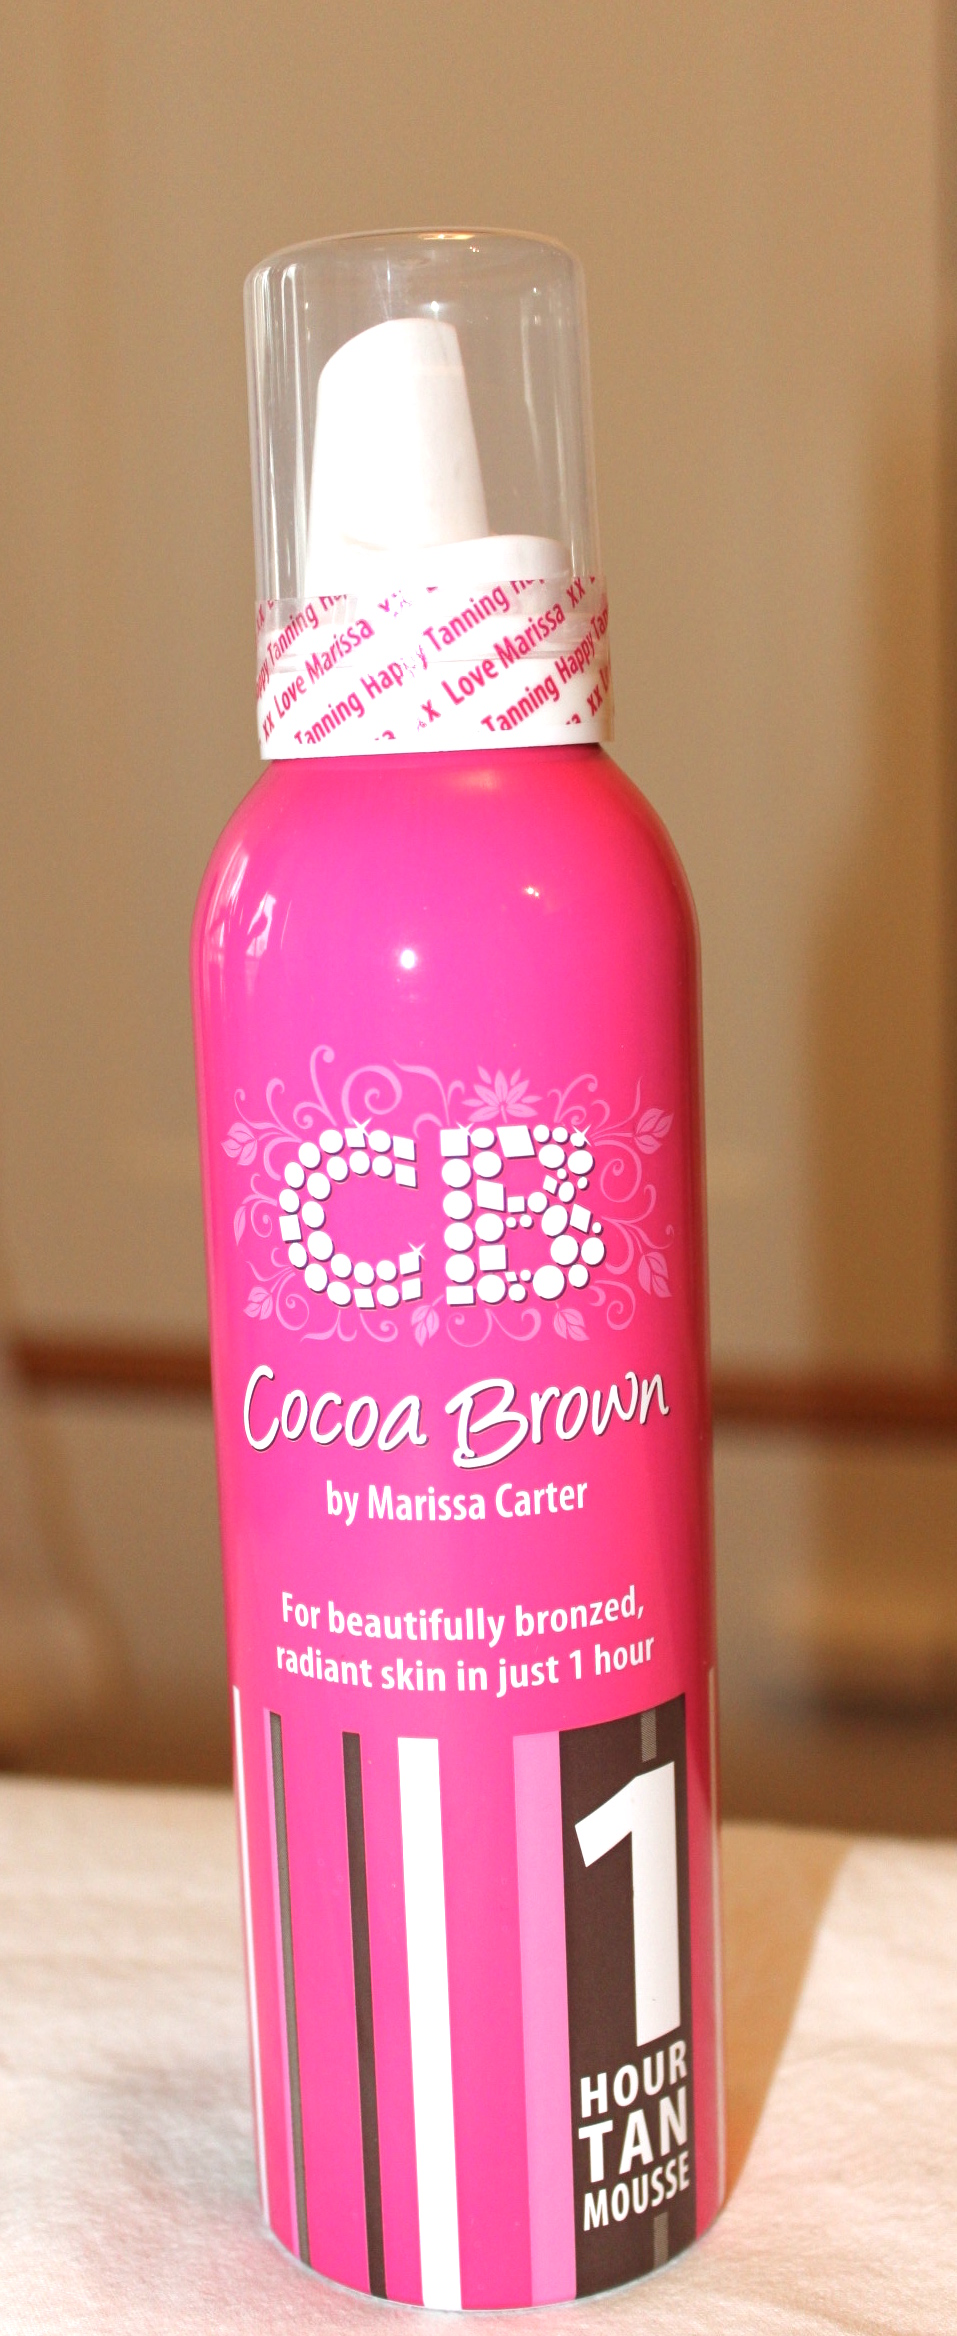 Cocoa Brown by Melissa Carter Elinfagerberg.se